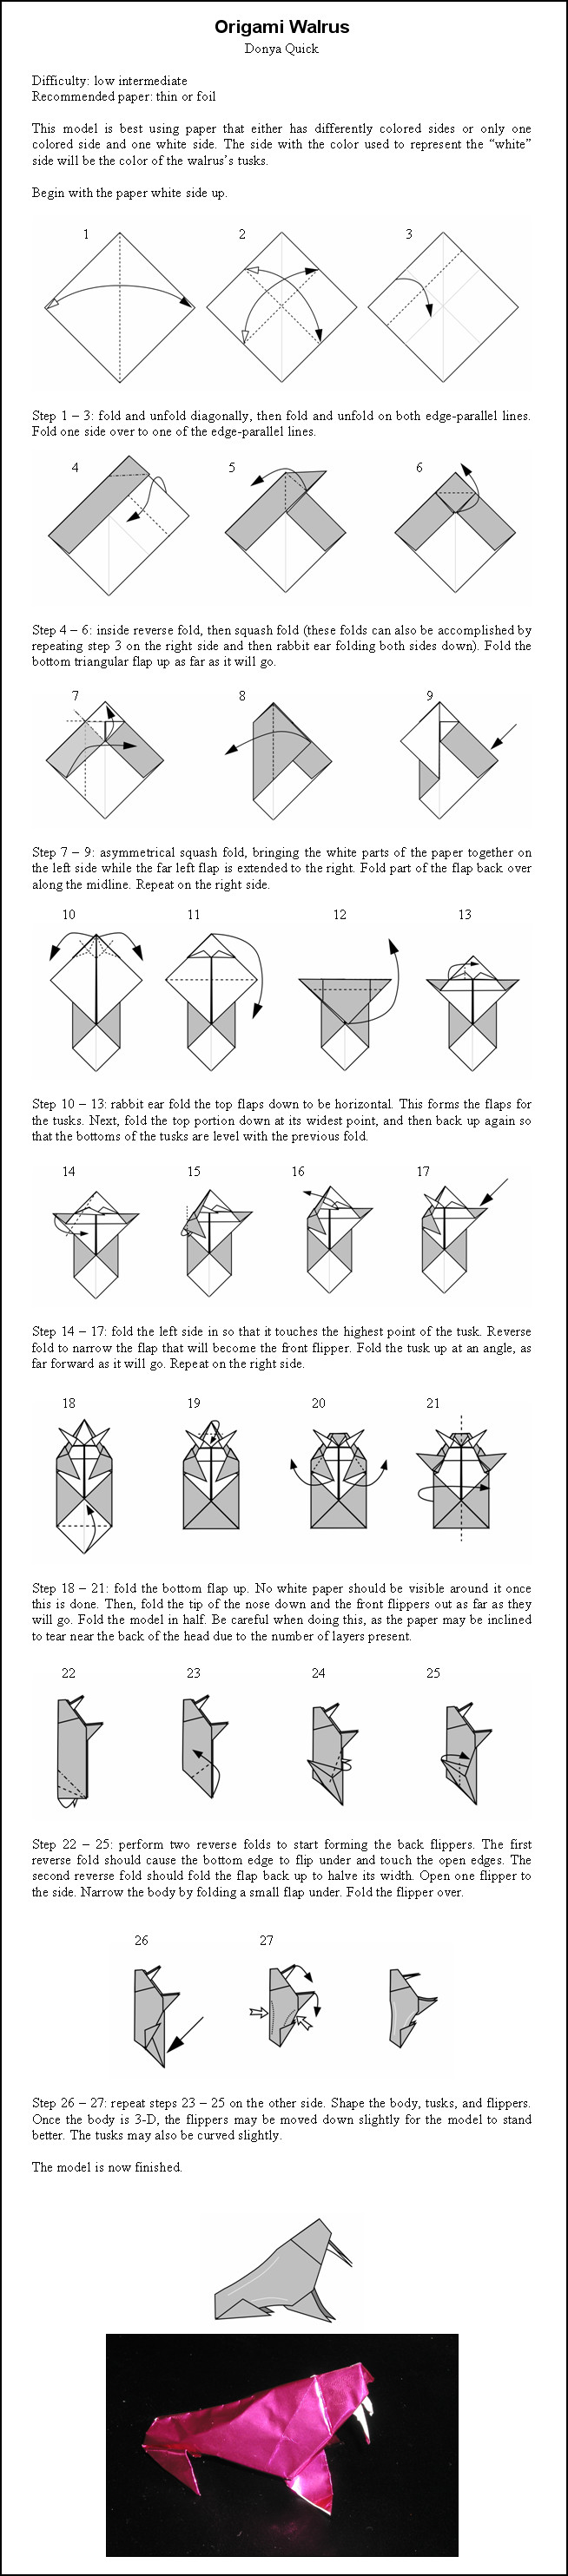 Origami Walrus Instructions by DonyaQuickOrigami Dragon Instructions Advanced